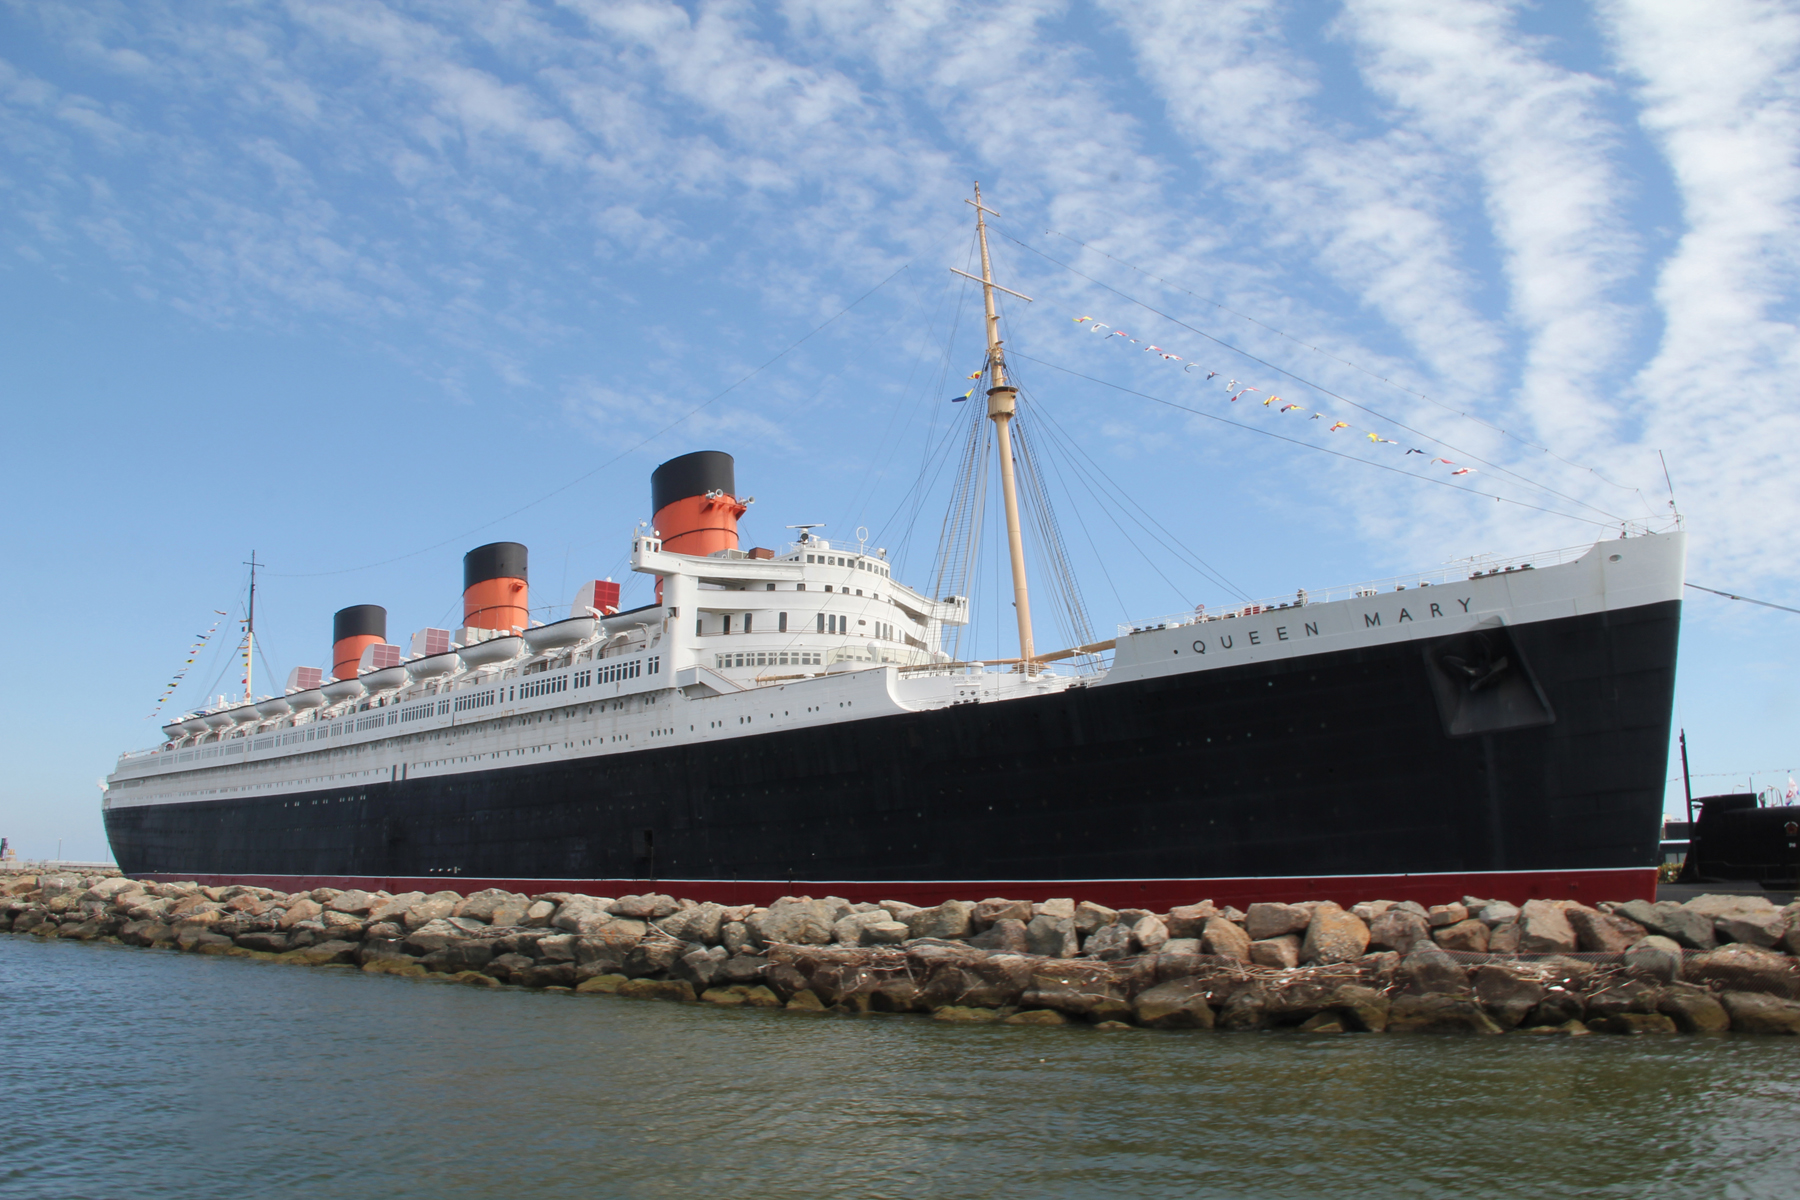 QM_Side_View-Courtesy_of_Queen_Mary (1).jpg